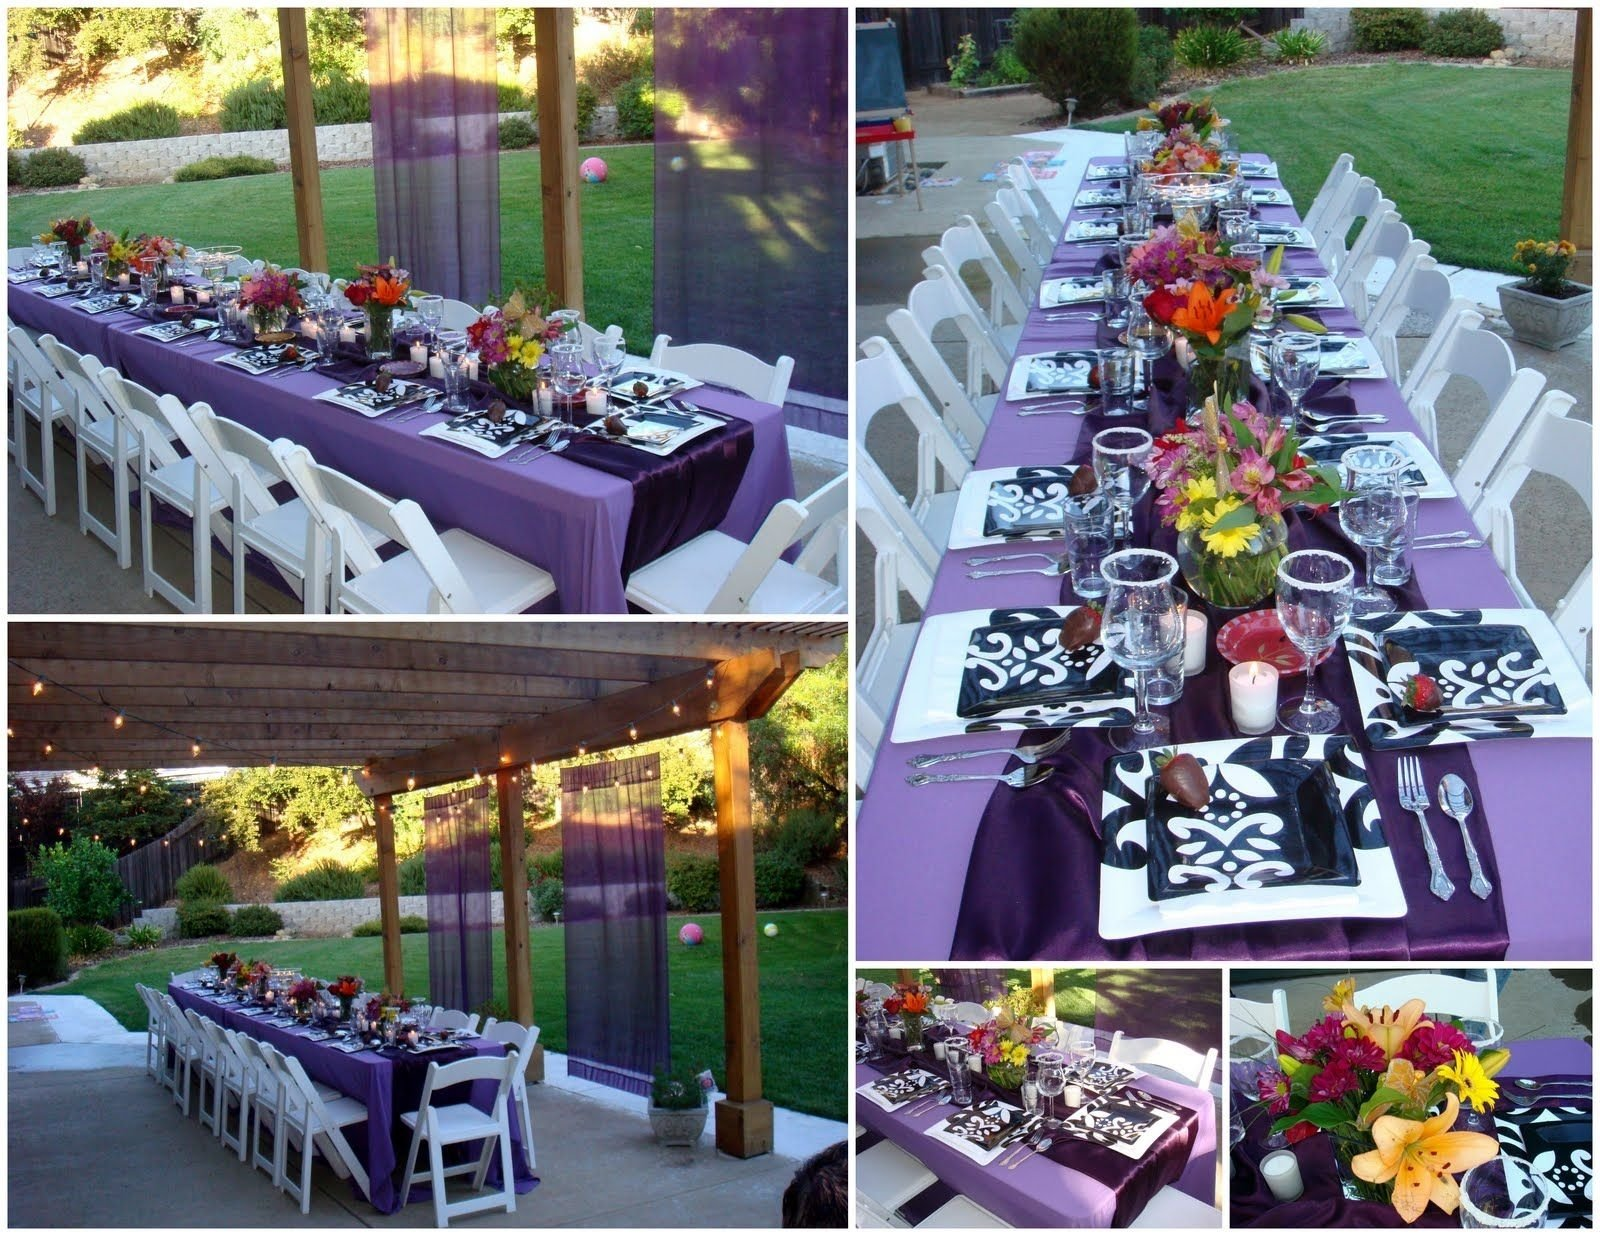 10 Pretty College Graduation Party Ideas For Adults high school graduation party ideas summer graduation party 1